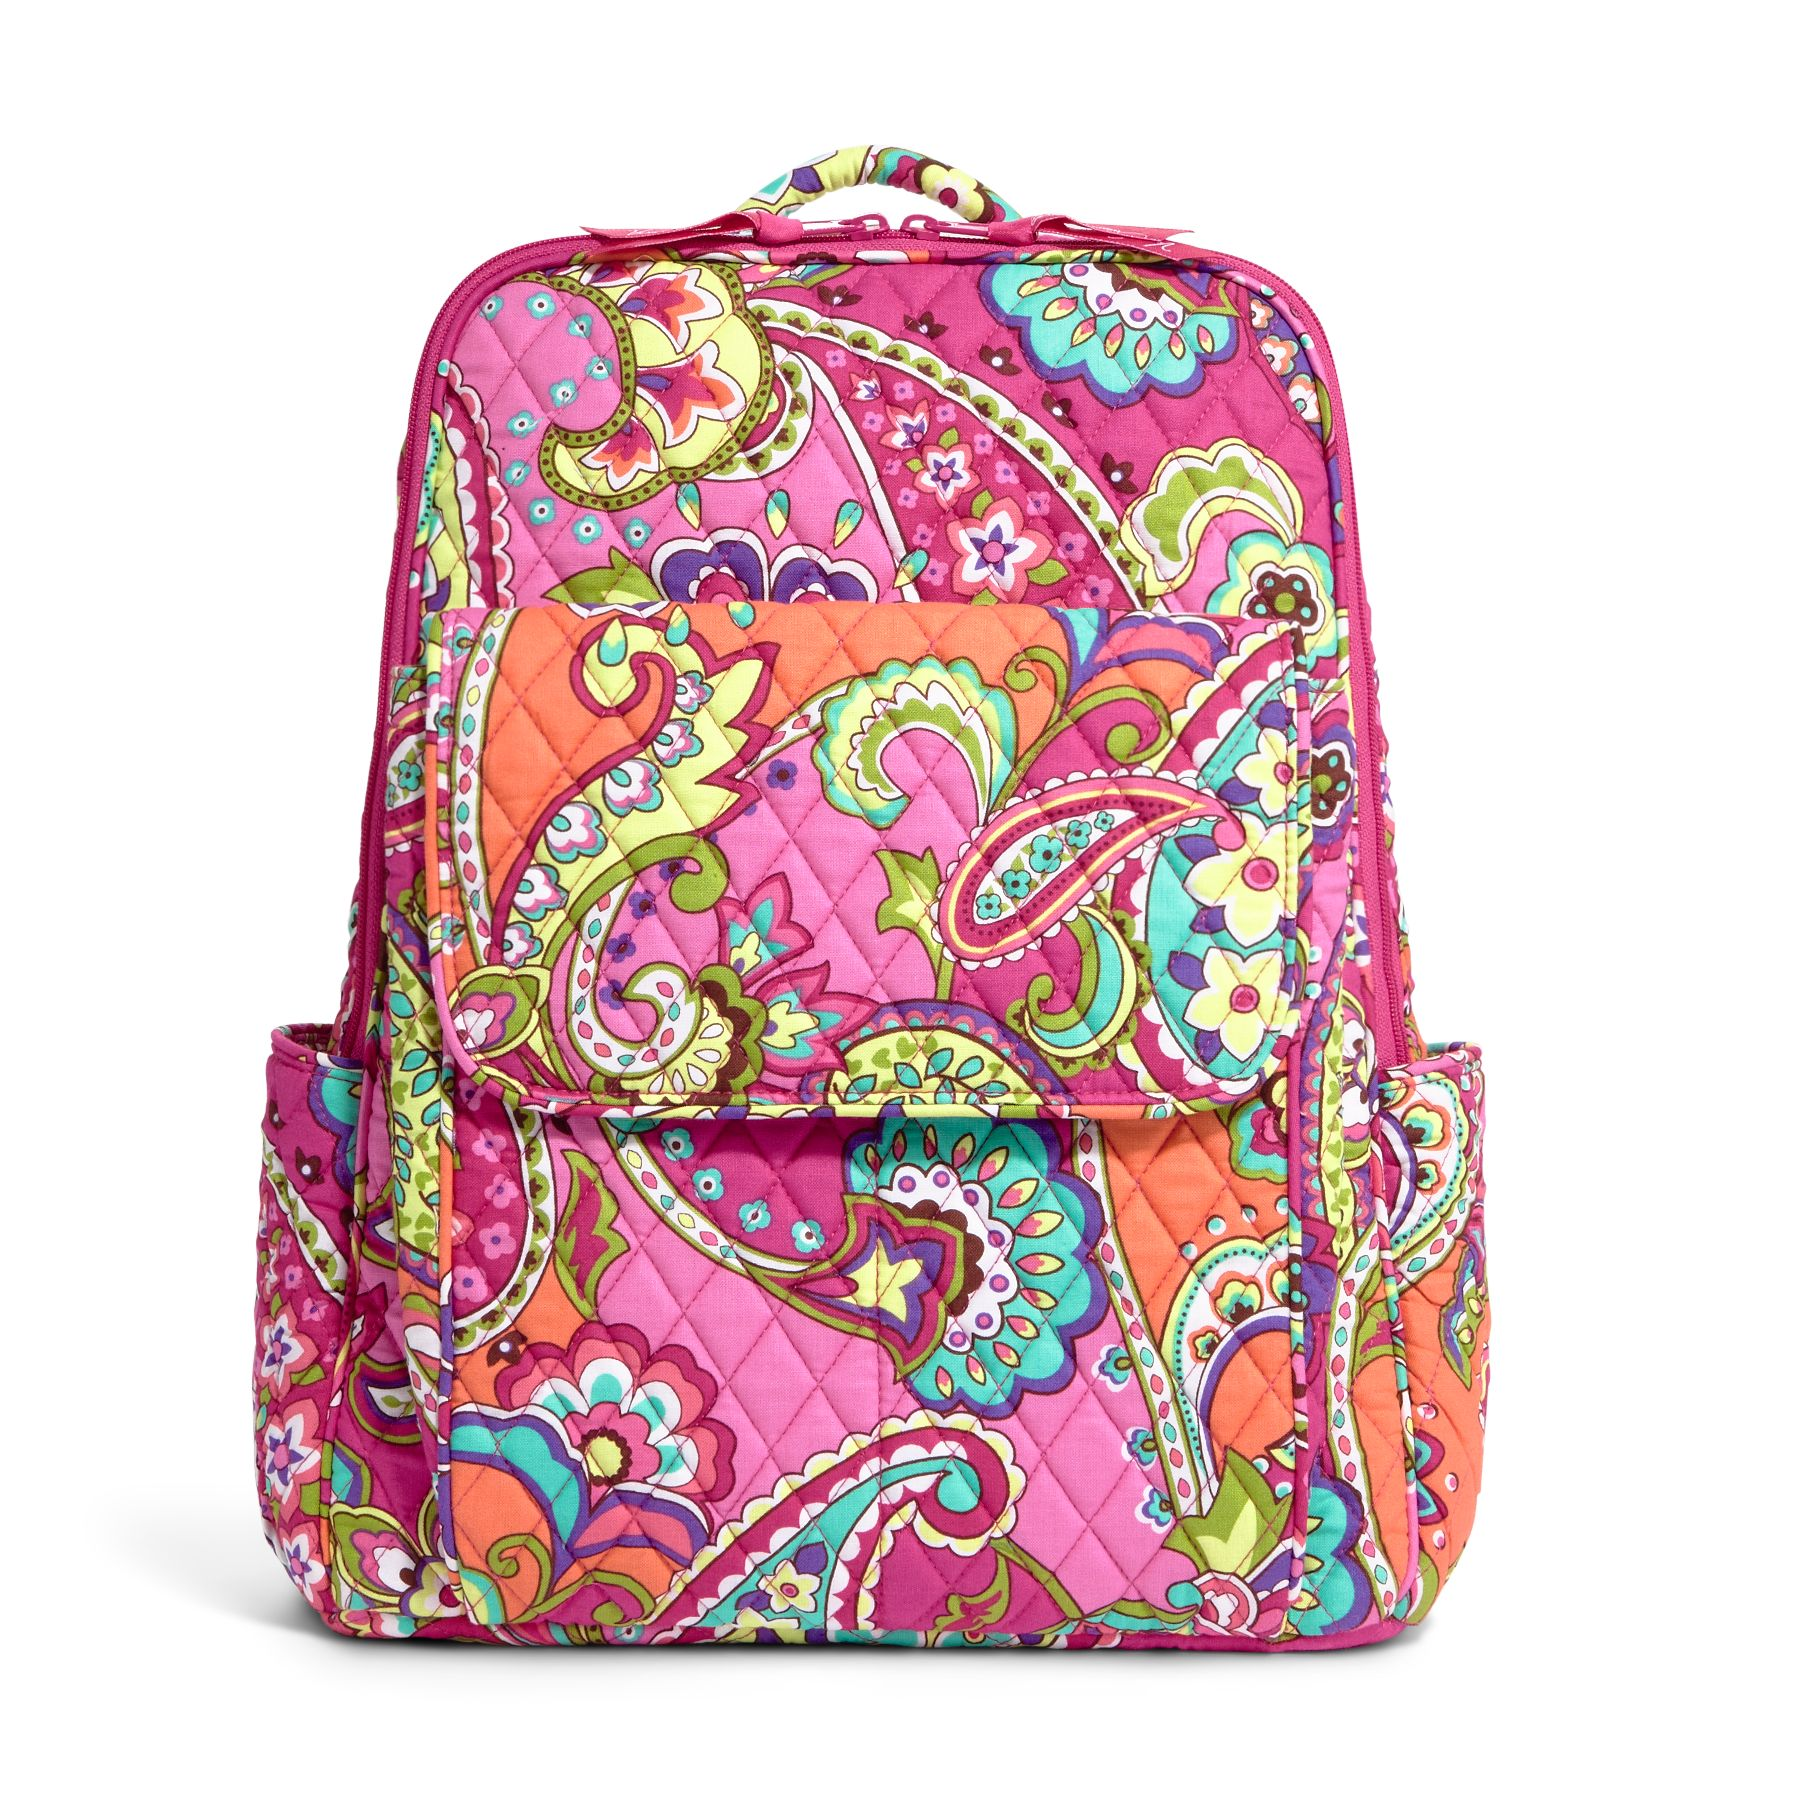 Vera Bradley Ultimate Backpack in Pink Swirls